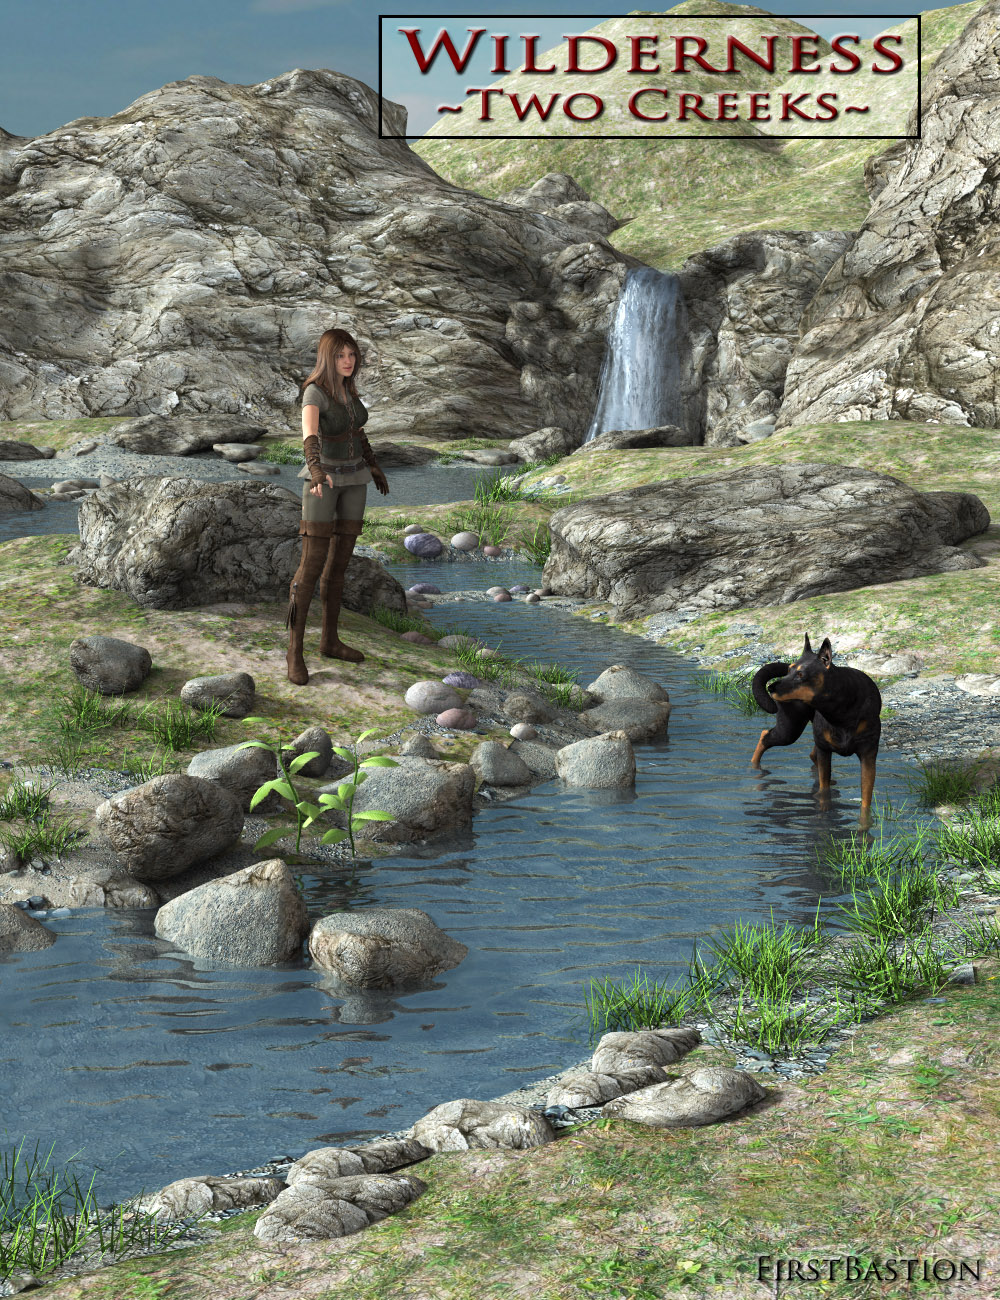 1stBastion's Wilderness: Two Creeks by: FirstBastion, 3D Models by Daz 3D